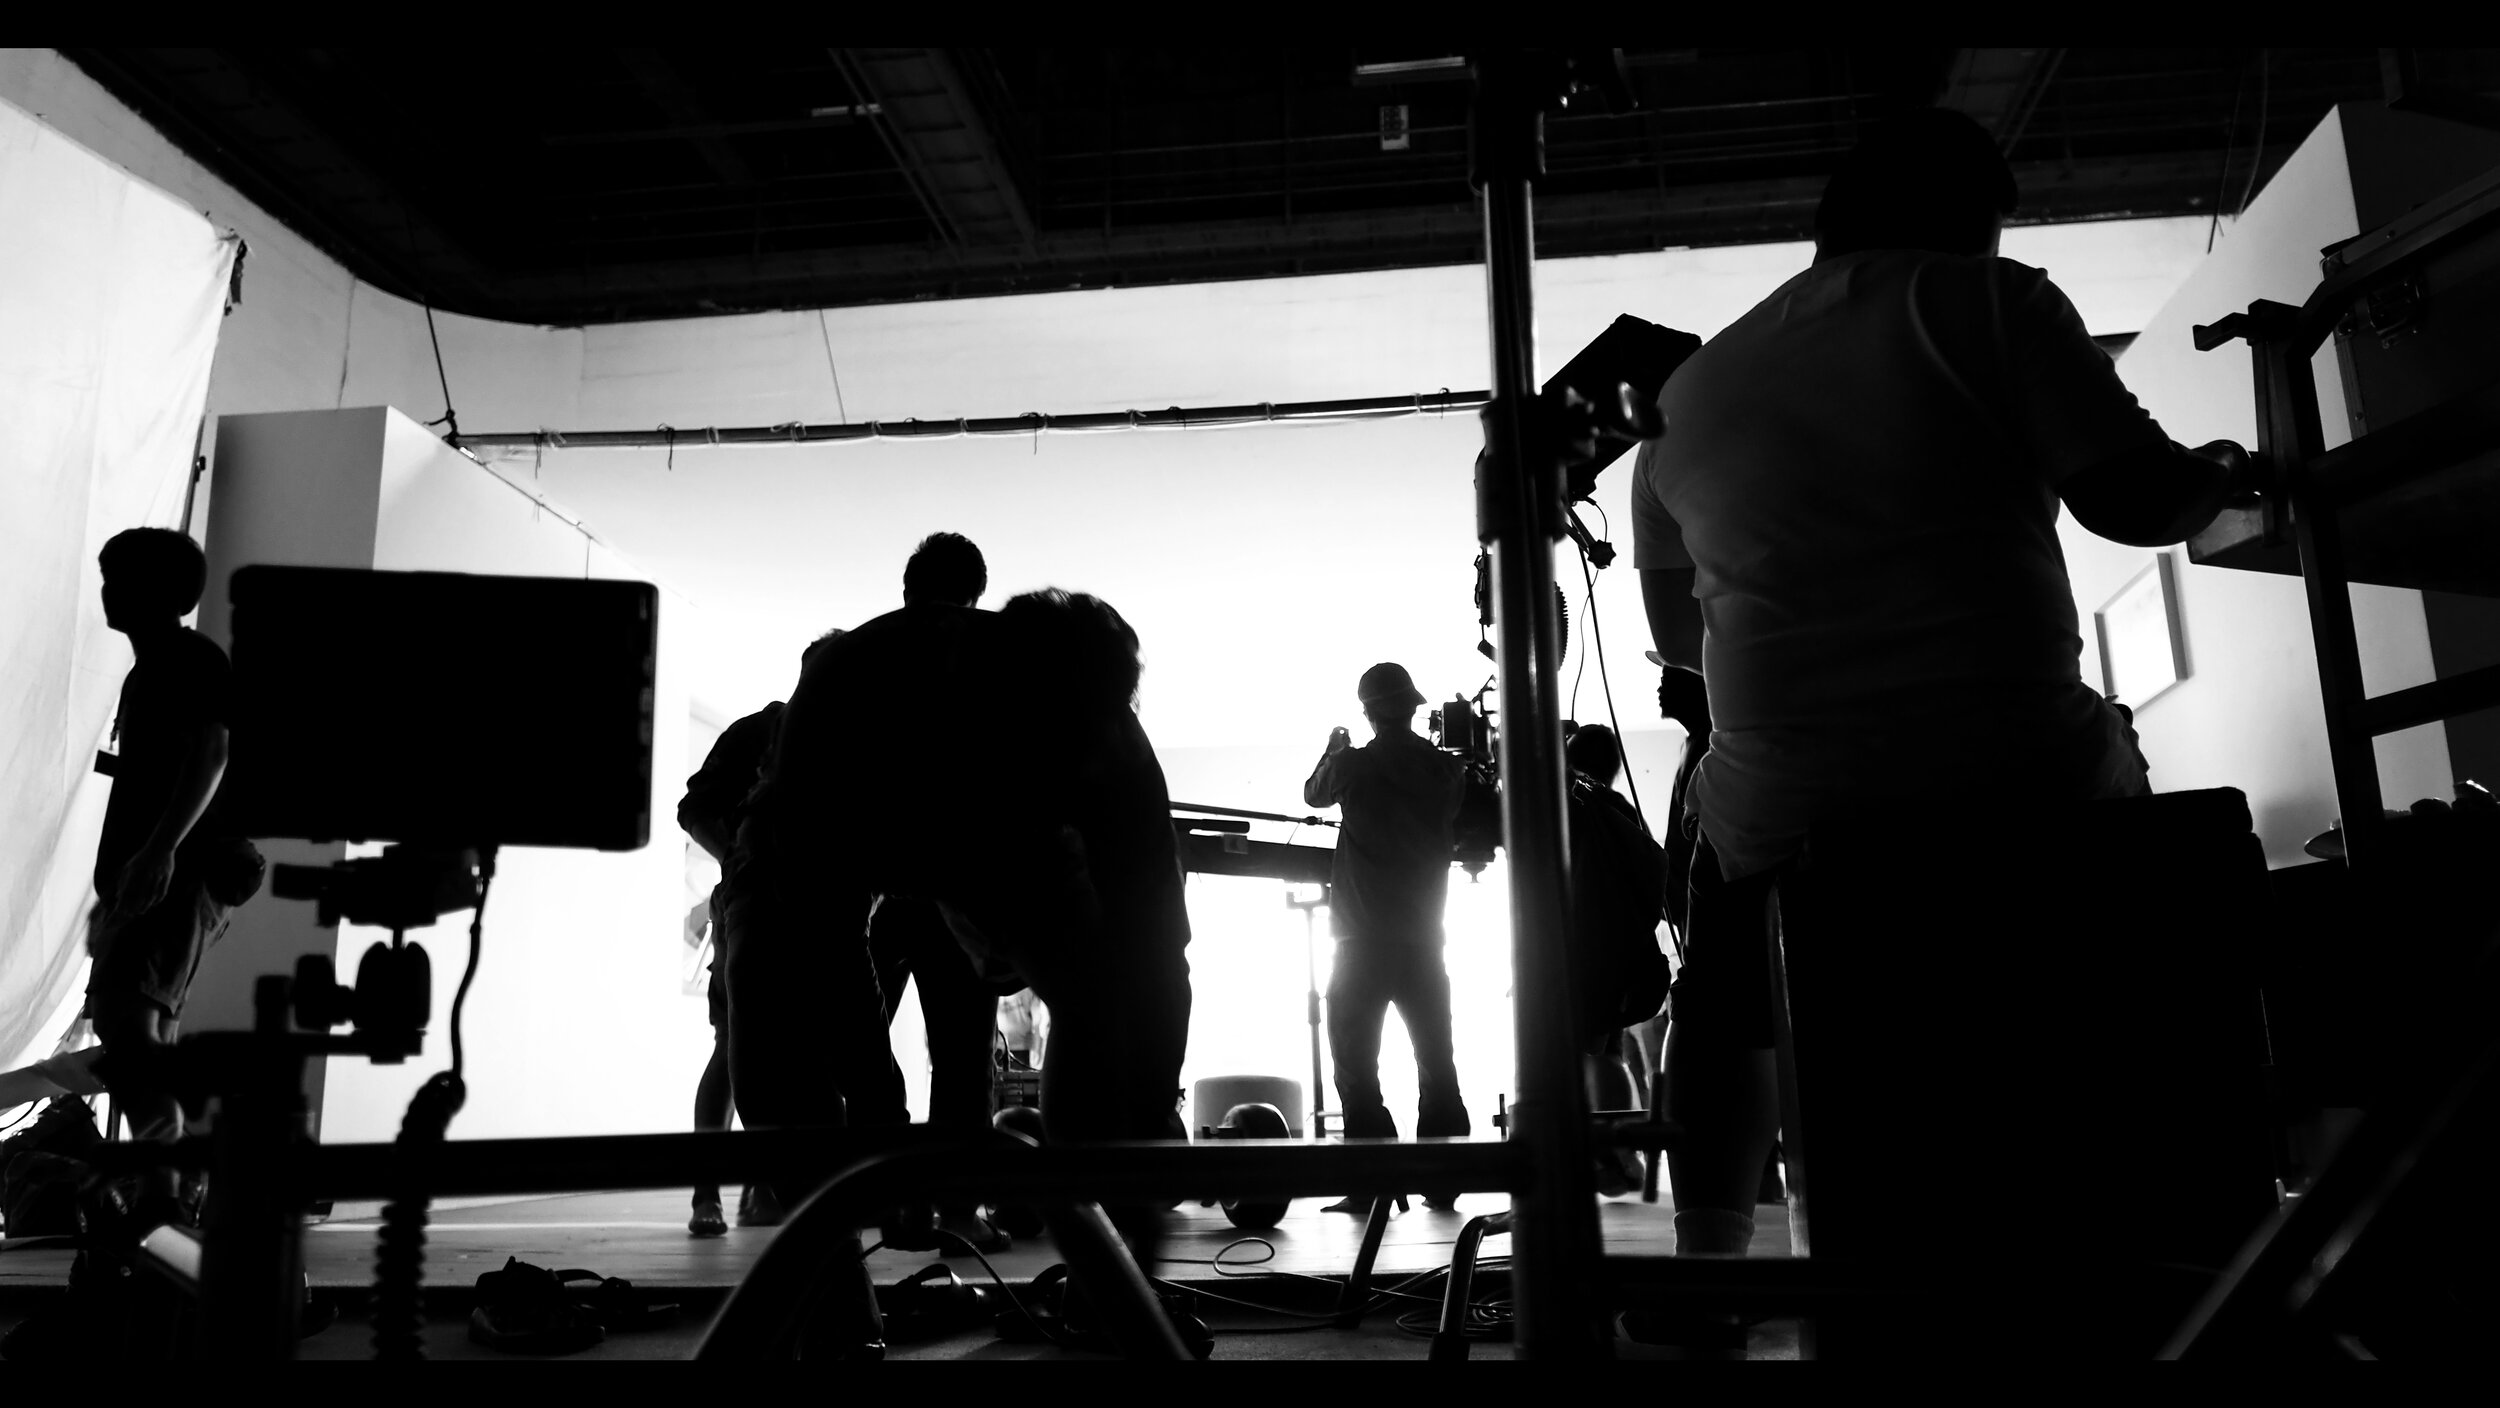 silhoutte-images-of-video-production-and-lighting--DZN5X6X.jpg